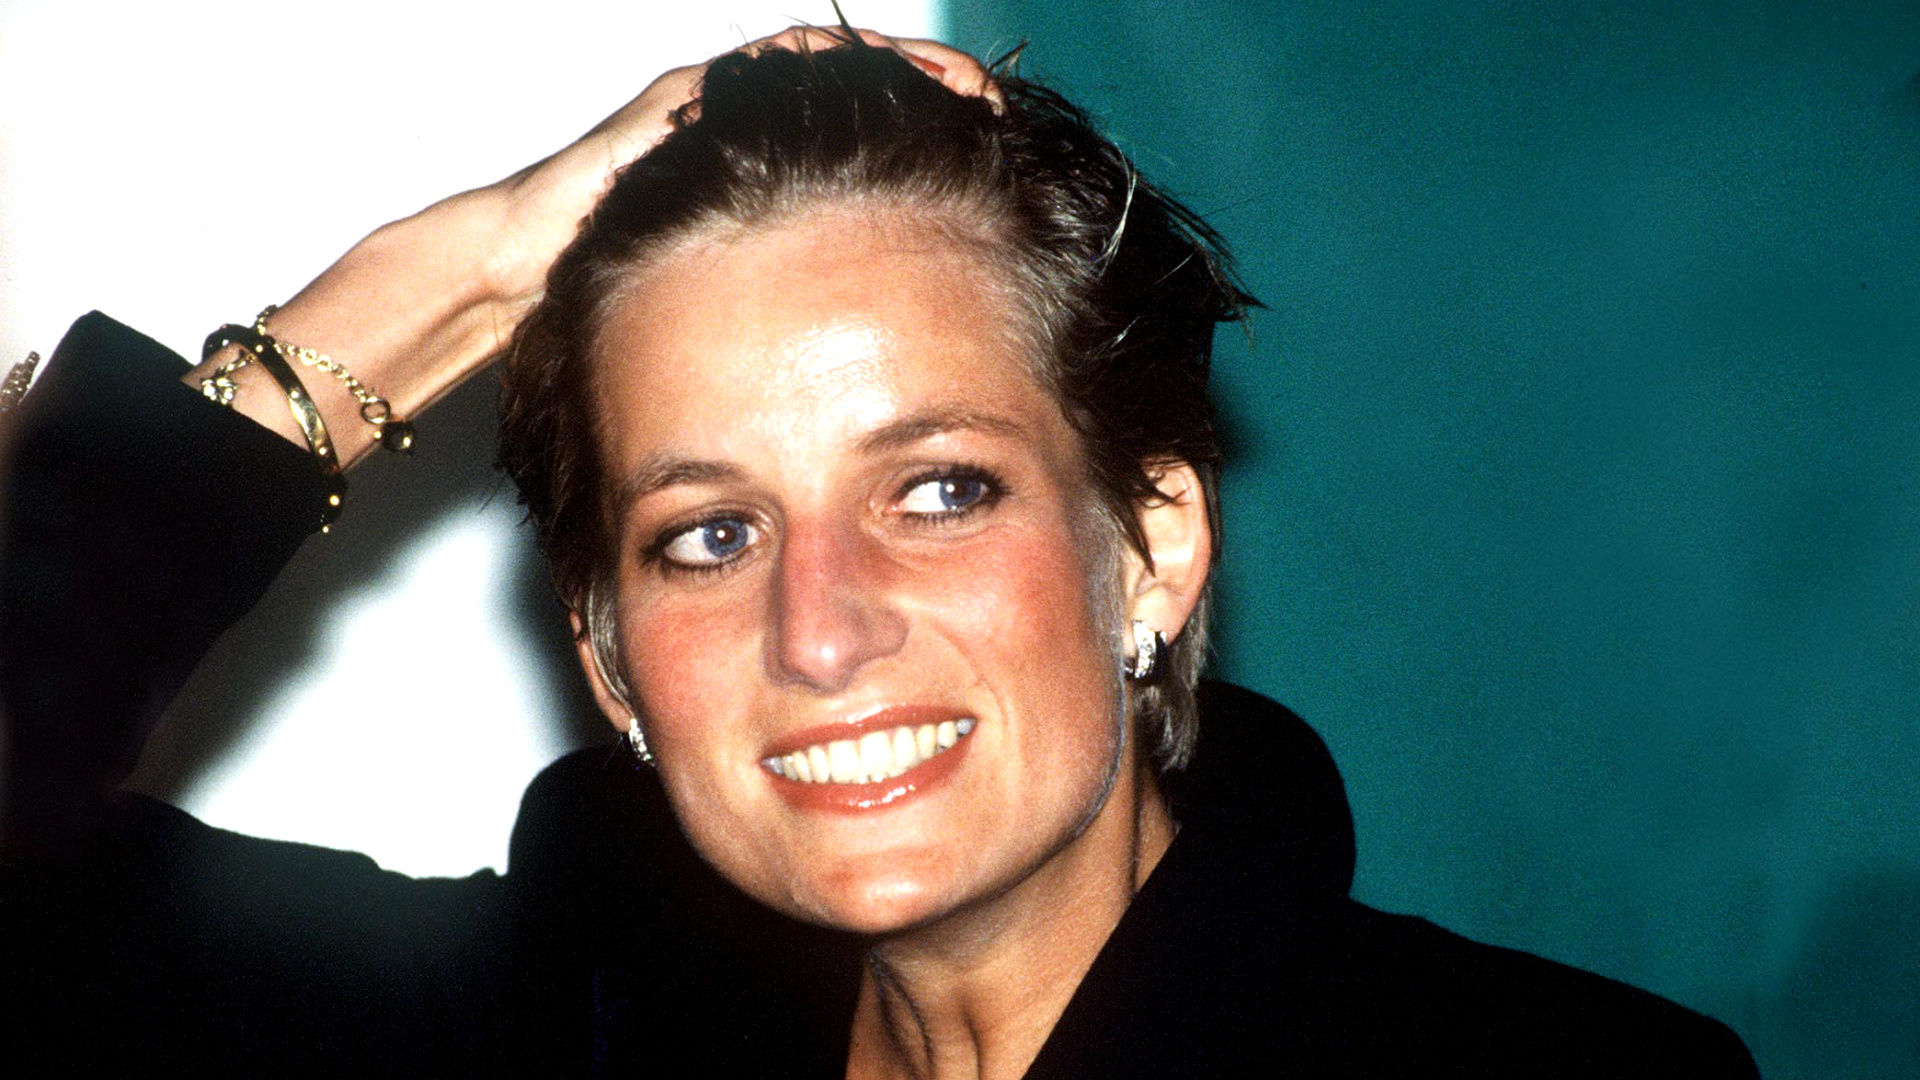 Princess Diana's last 24 hours: what happened before the fatal crash?